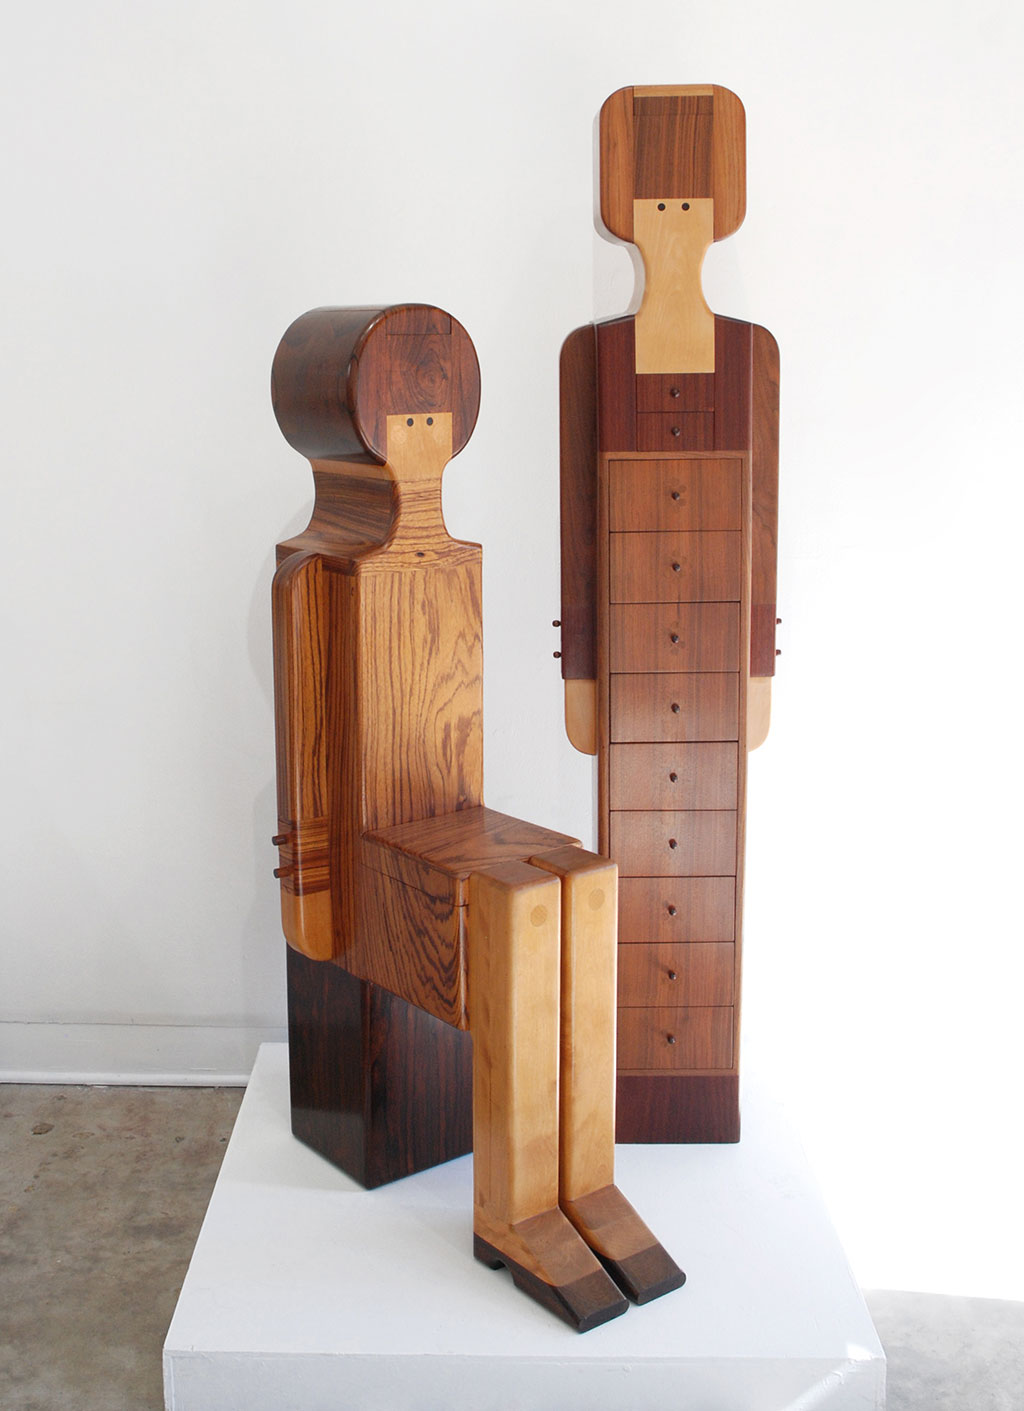 Made to Play, Pamela Weir-Quiton, Georgie Girl Seat and Chest of Drawers, 1970 (left). Sloopy Chest of Drawers, 1966 (right), Craft in America